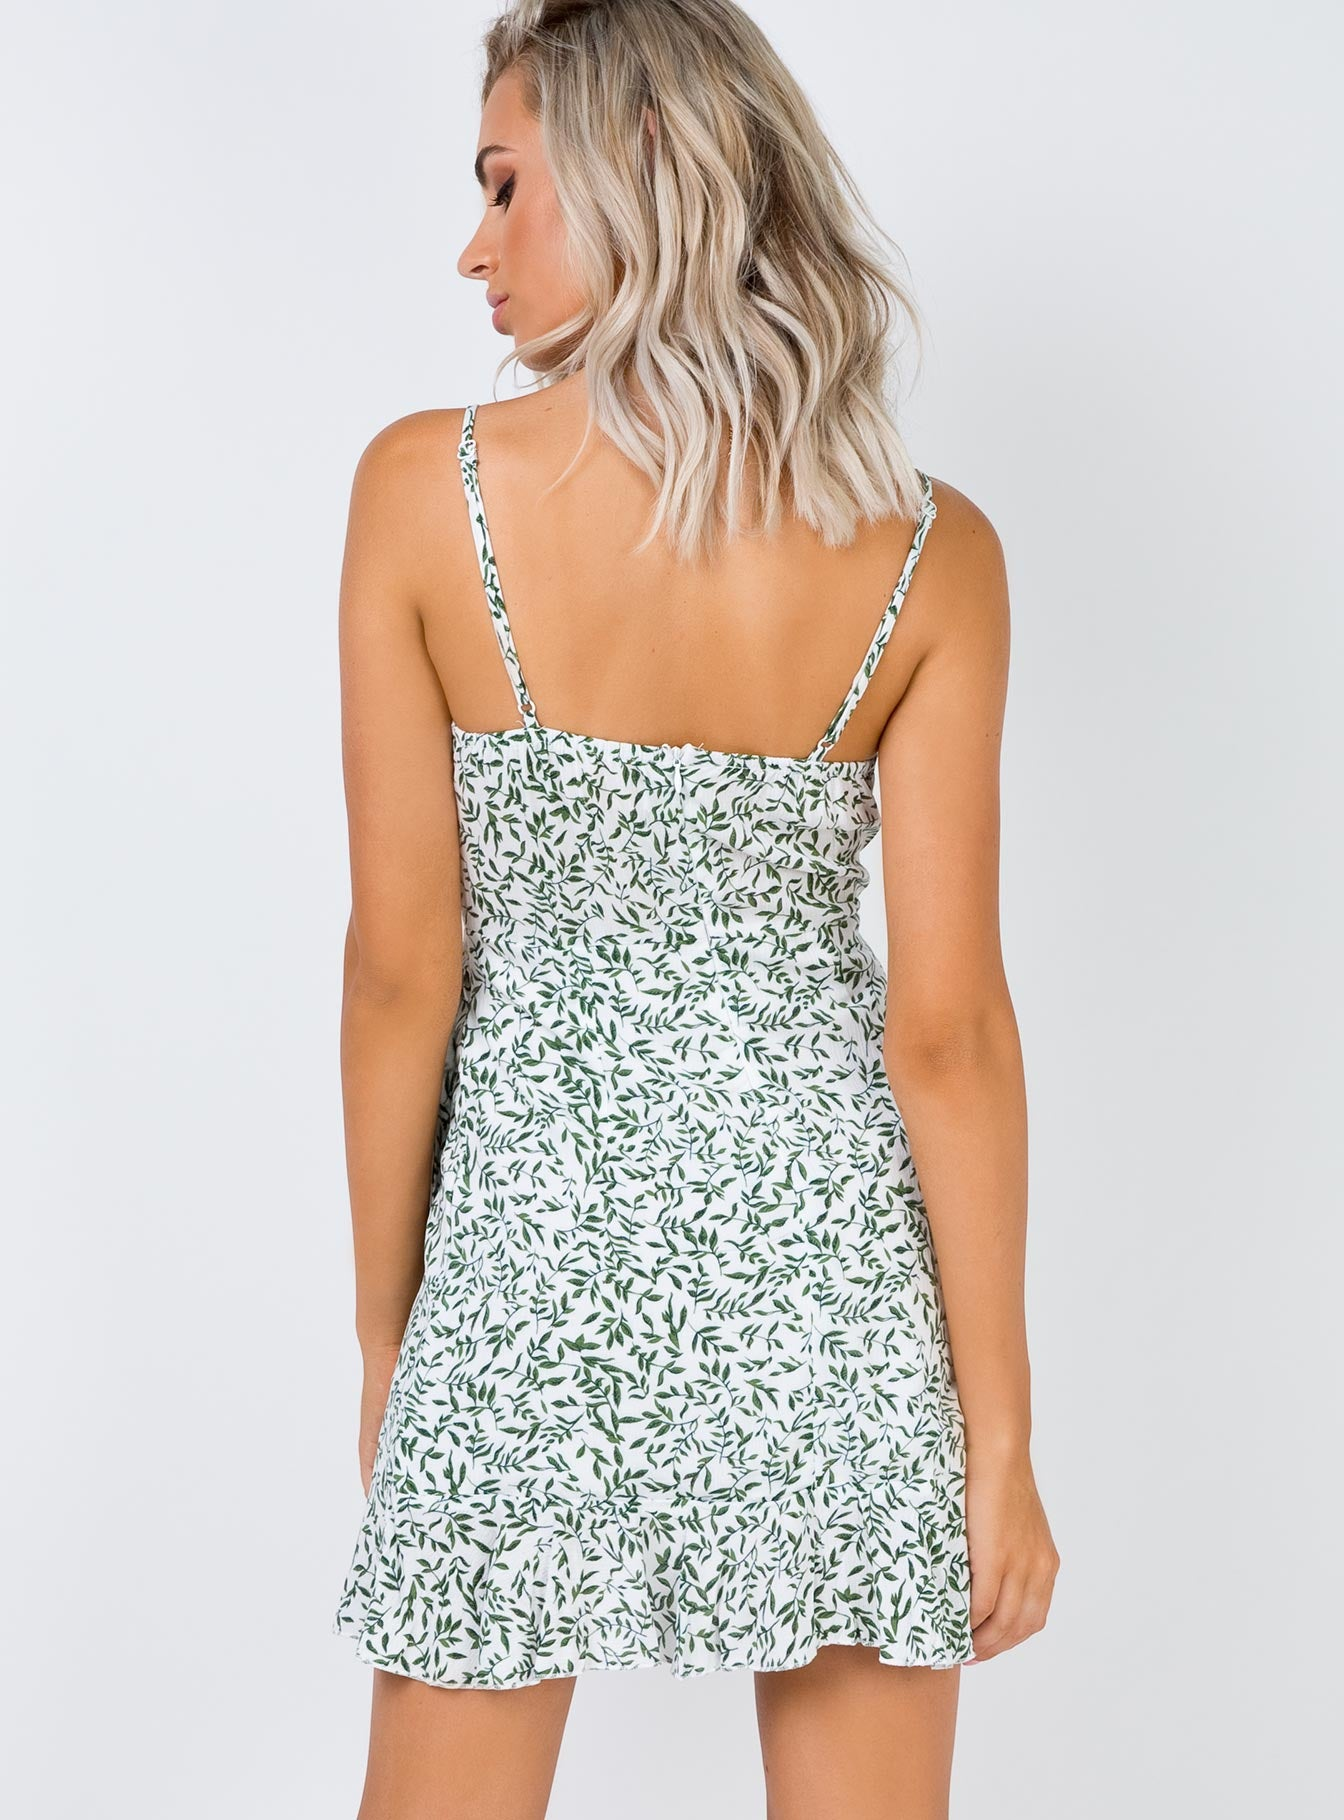 Olive Garden Mini Dress White/Green